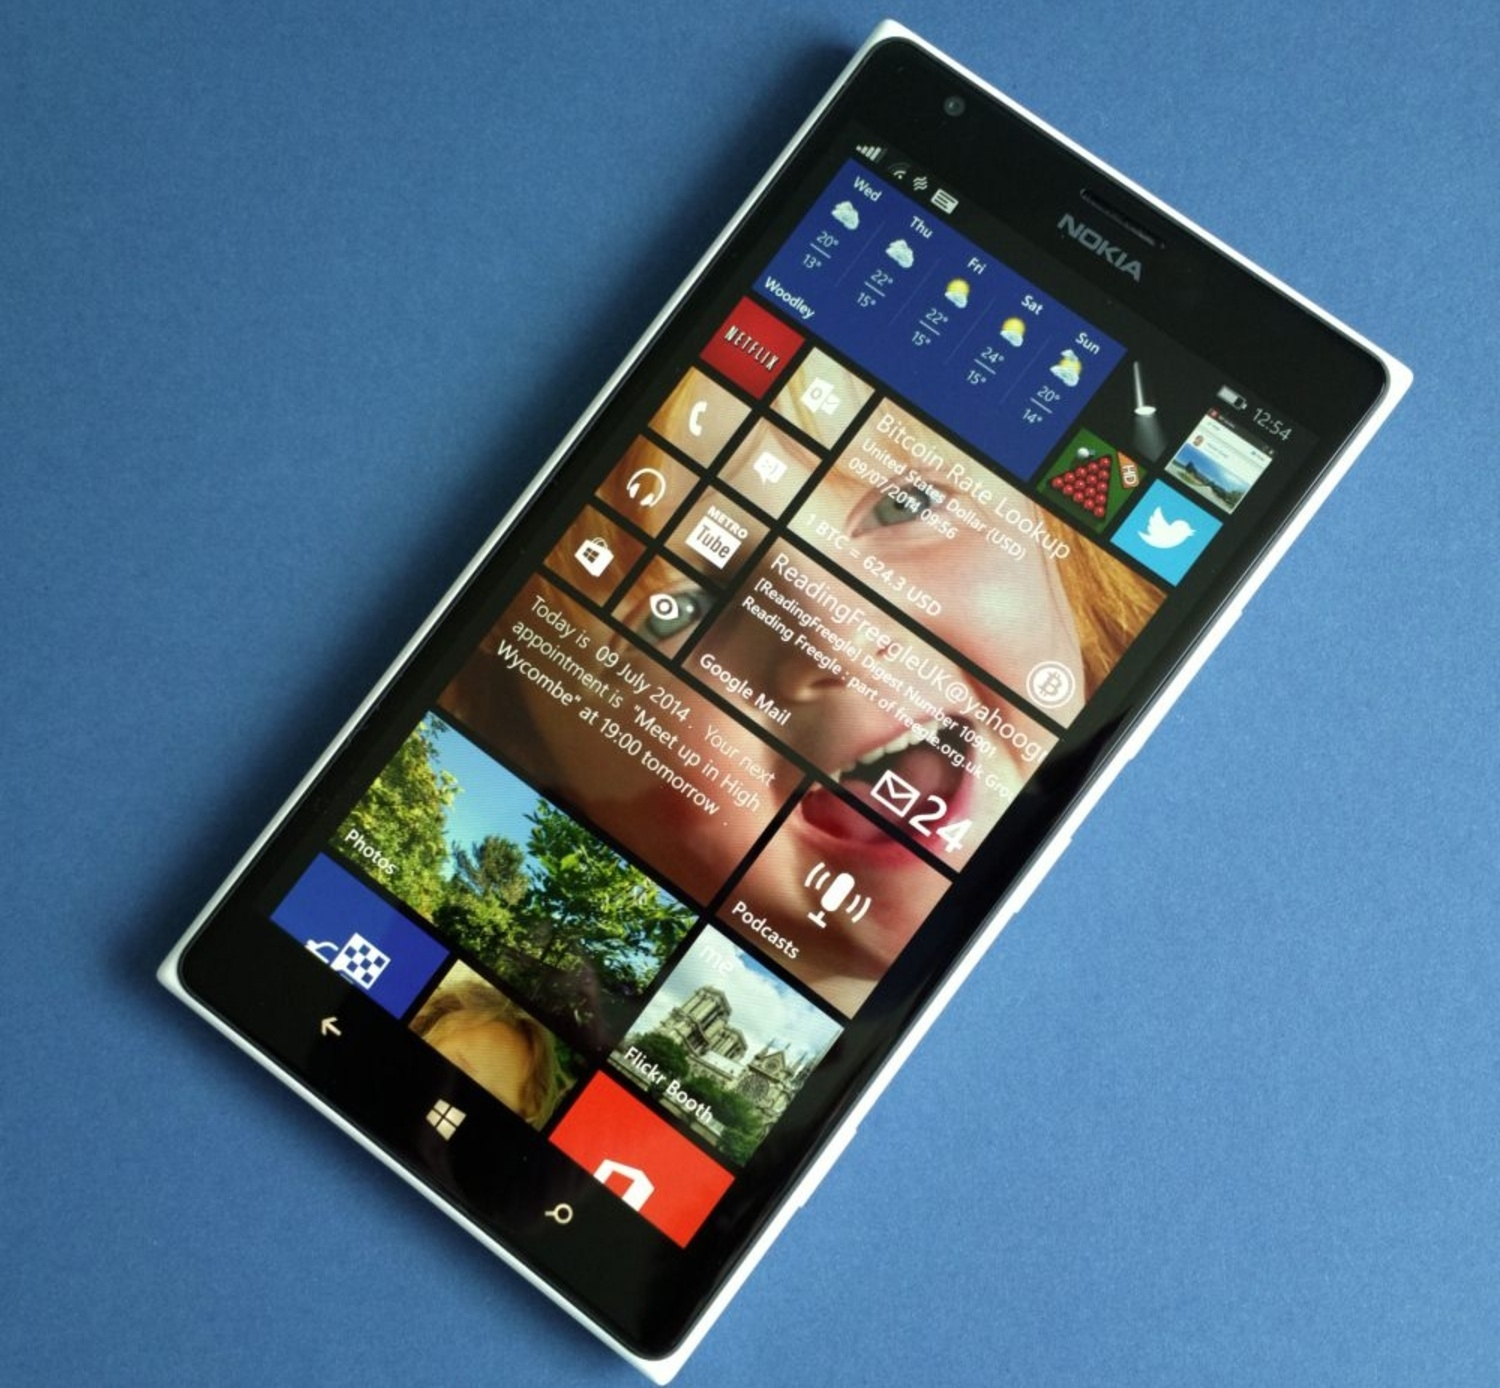 6 Reasons Why The Lumia 550 Sucks